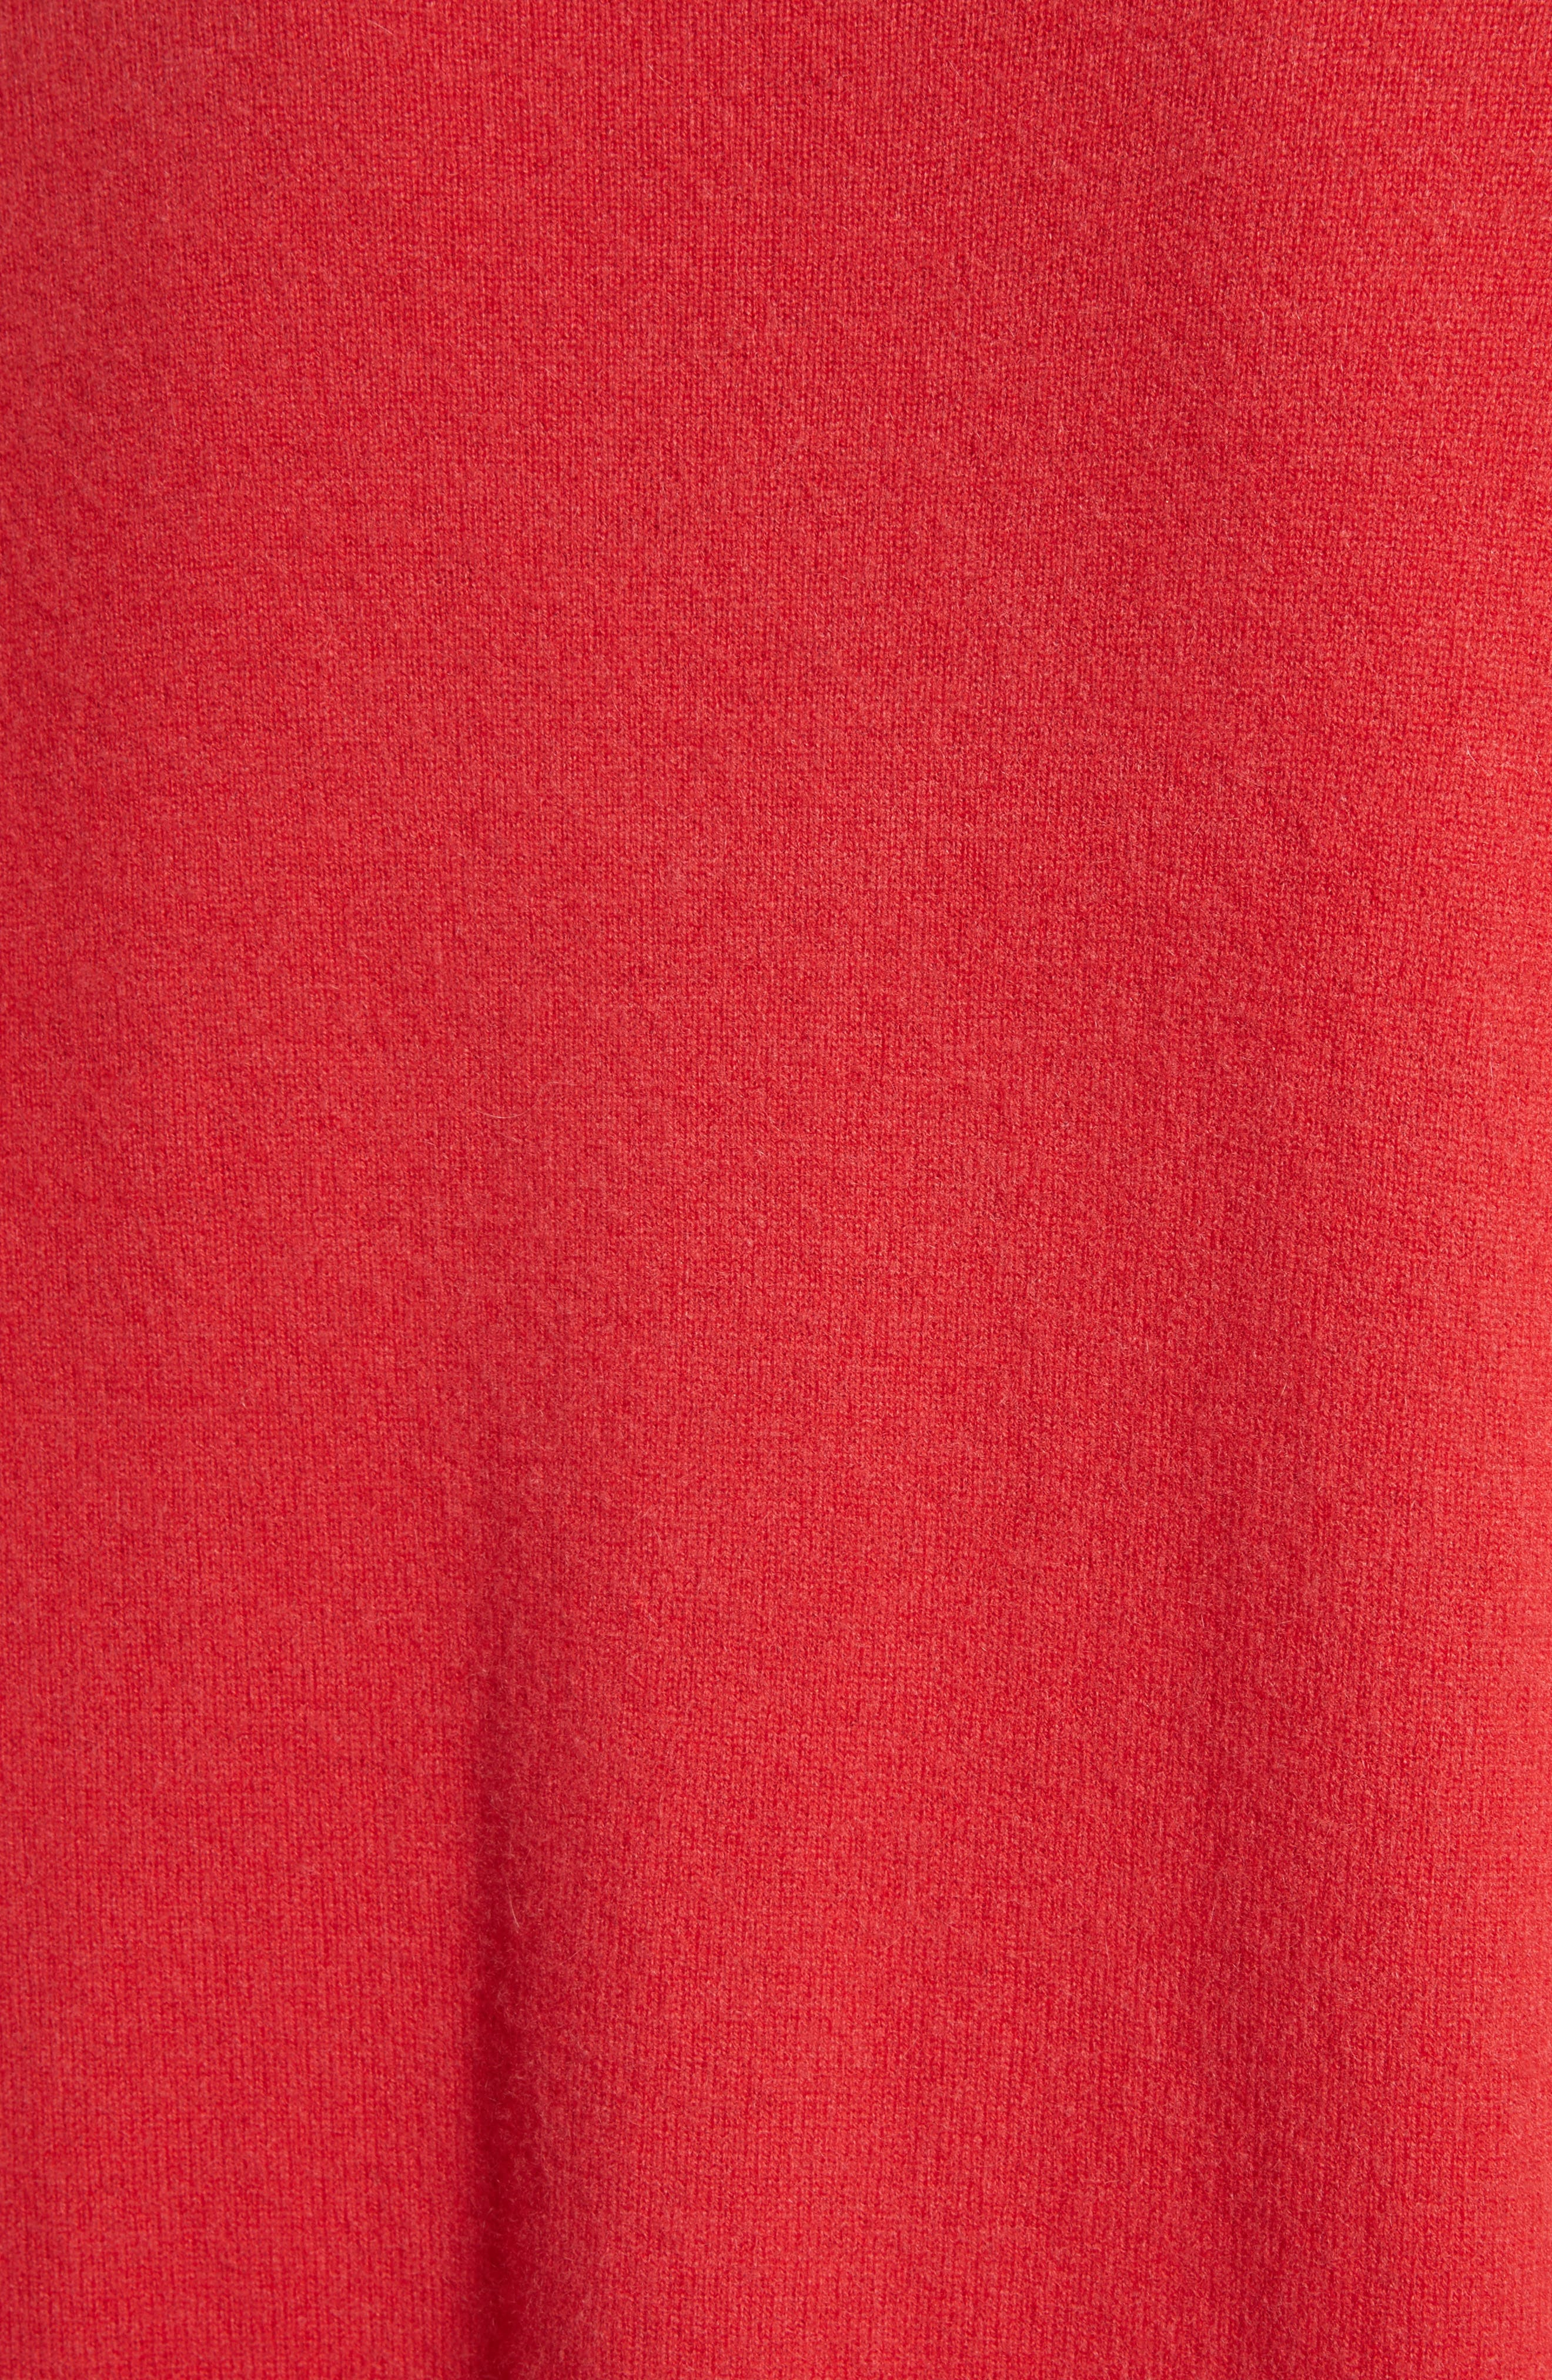 Pleat Sleeve Cashmere Sweater,                             Alternate thumbnail 7, color,                             Poppy